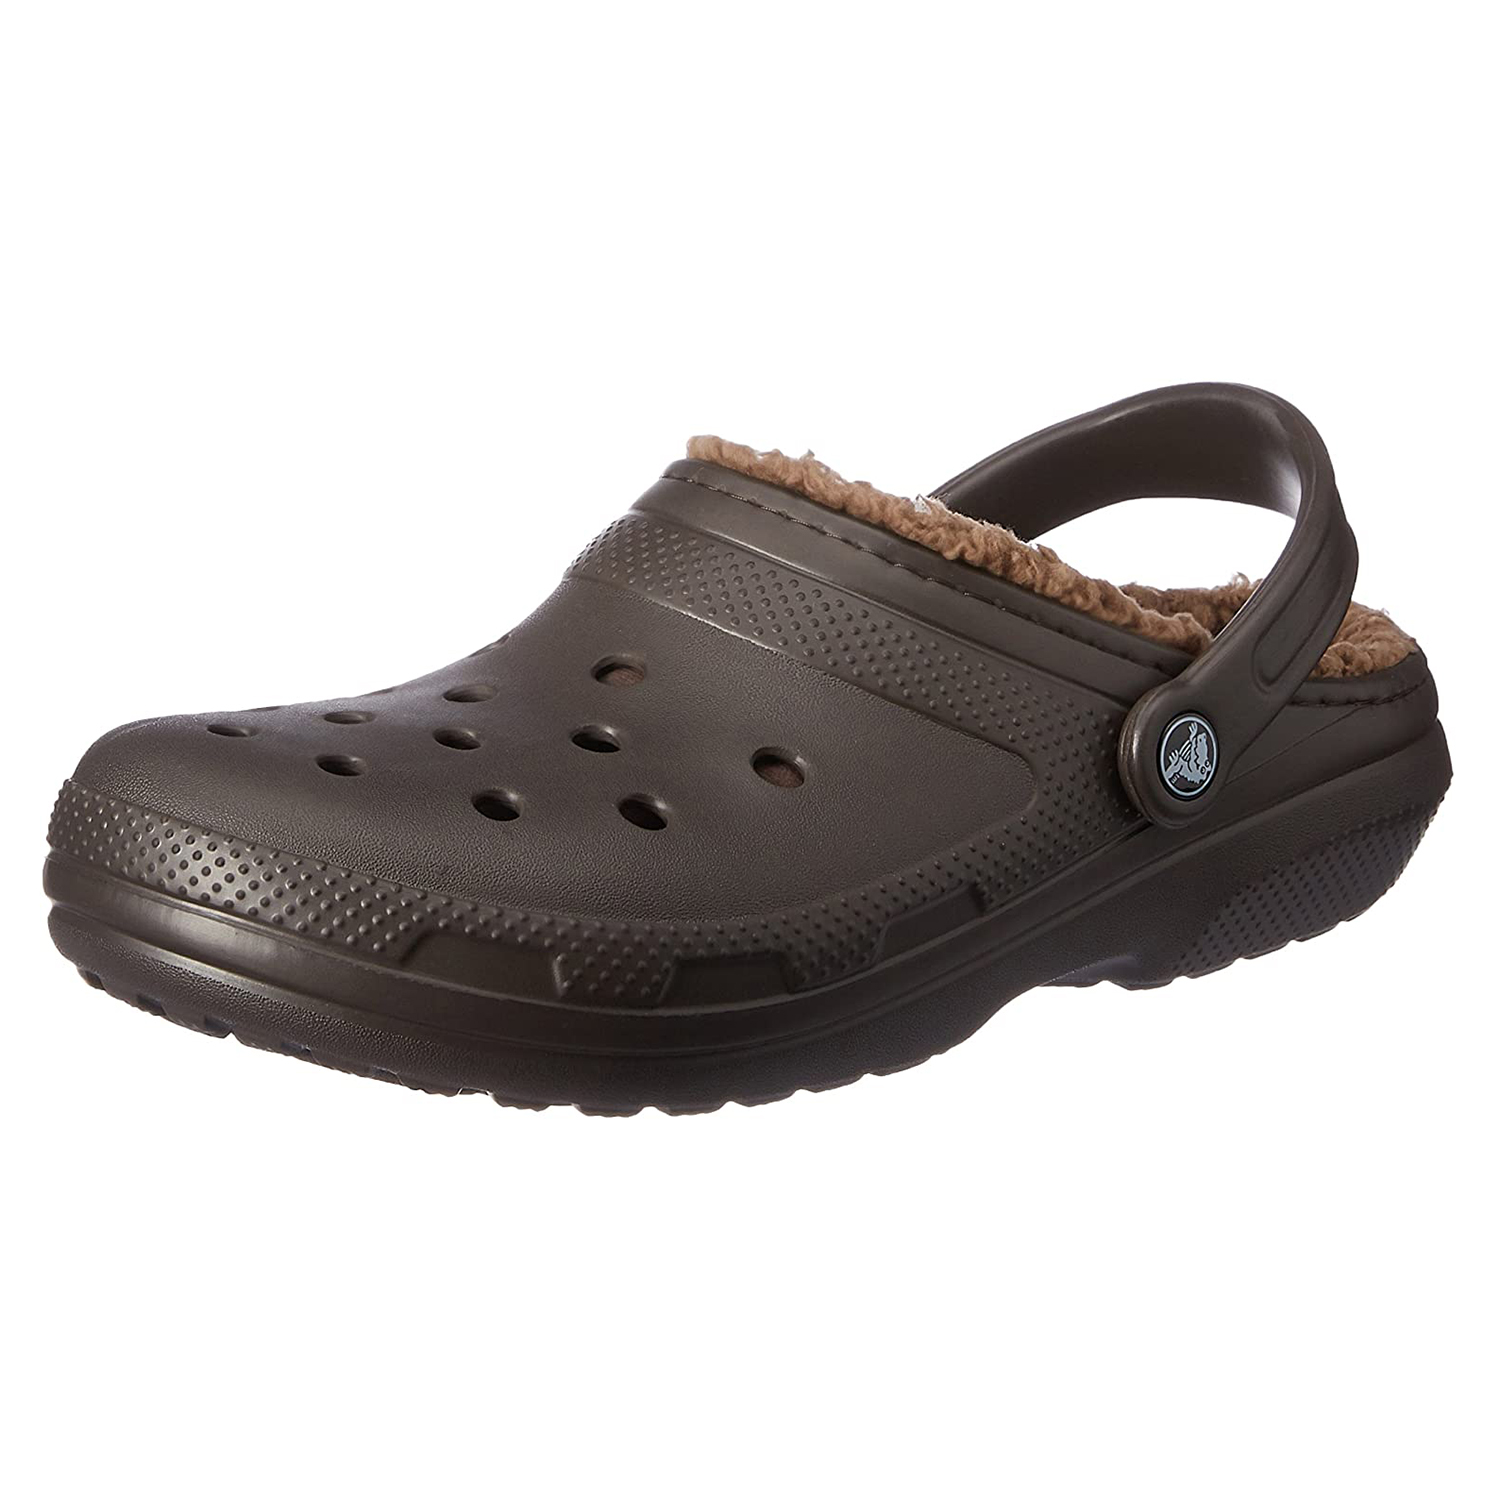 Crocs Men's and Women's Fuzzy-Lined Slippers